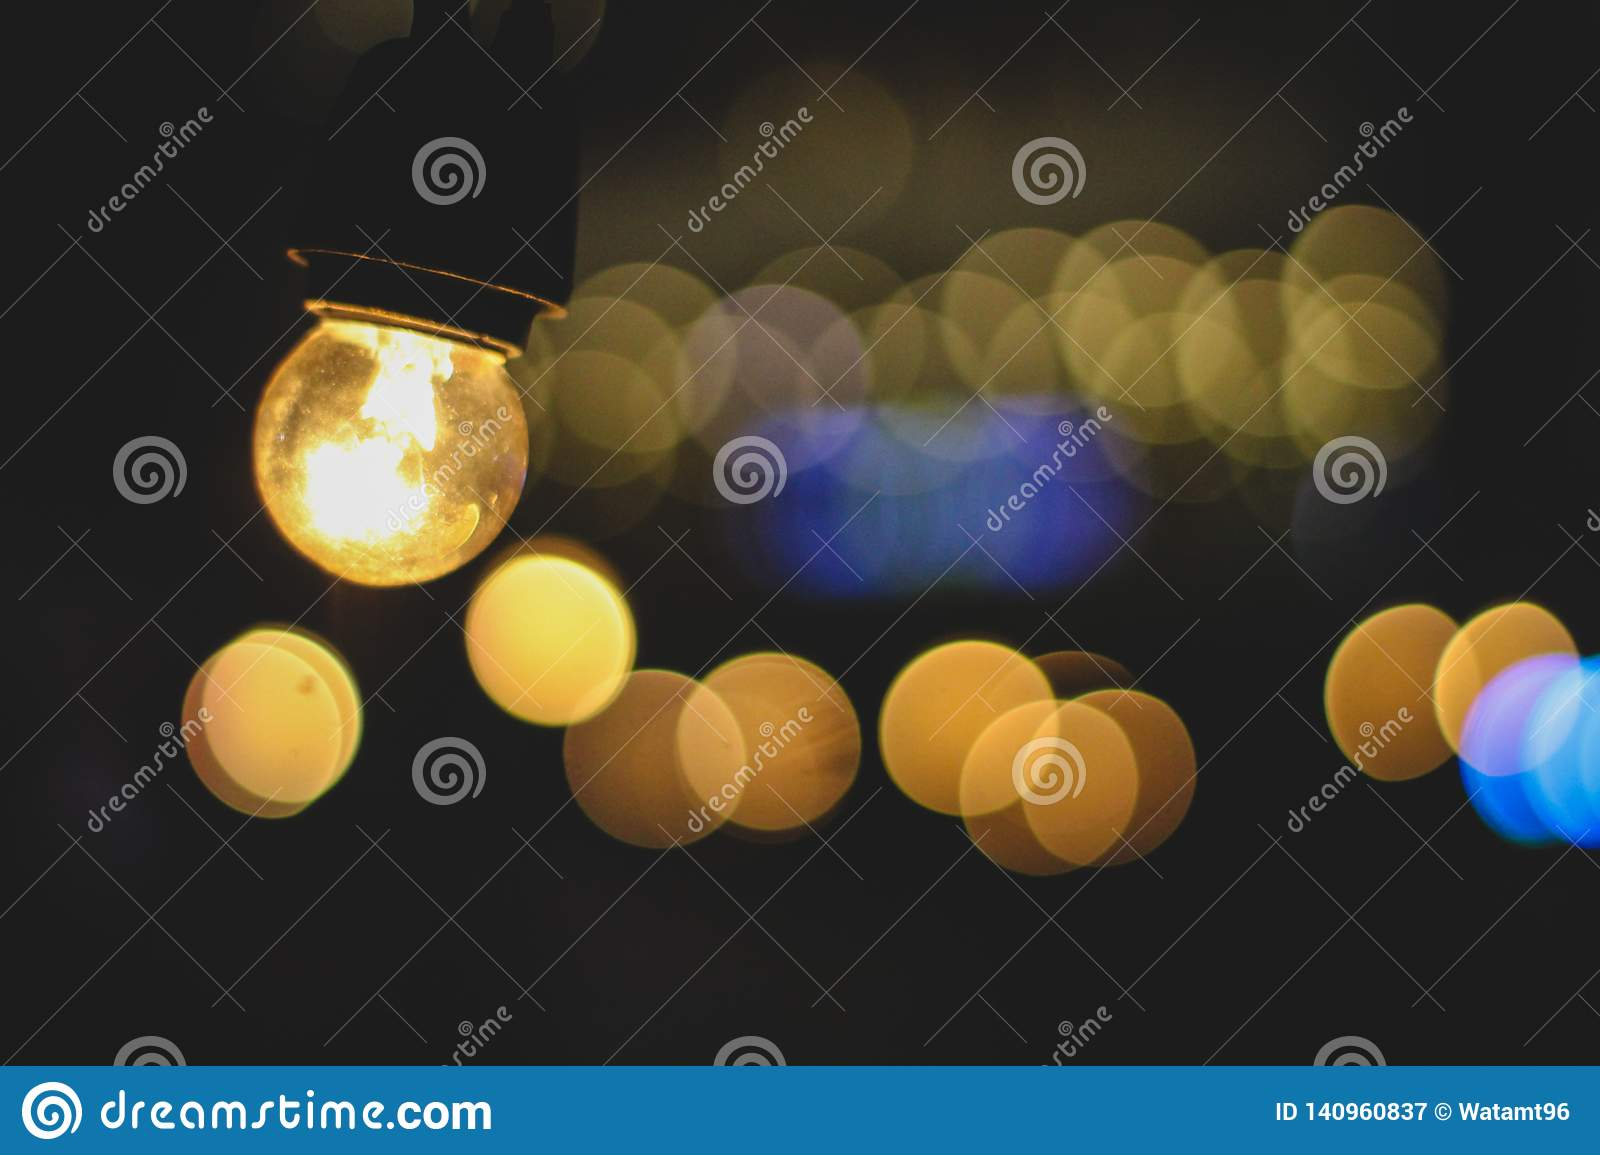 A Spark Of Light In The Dark Stock Image - Image of light